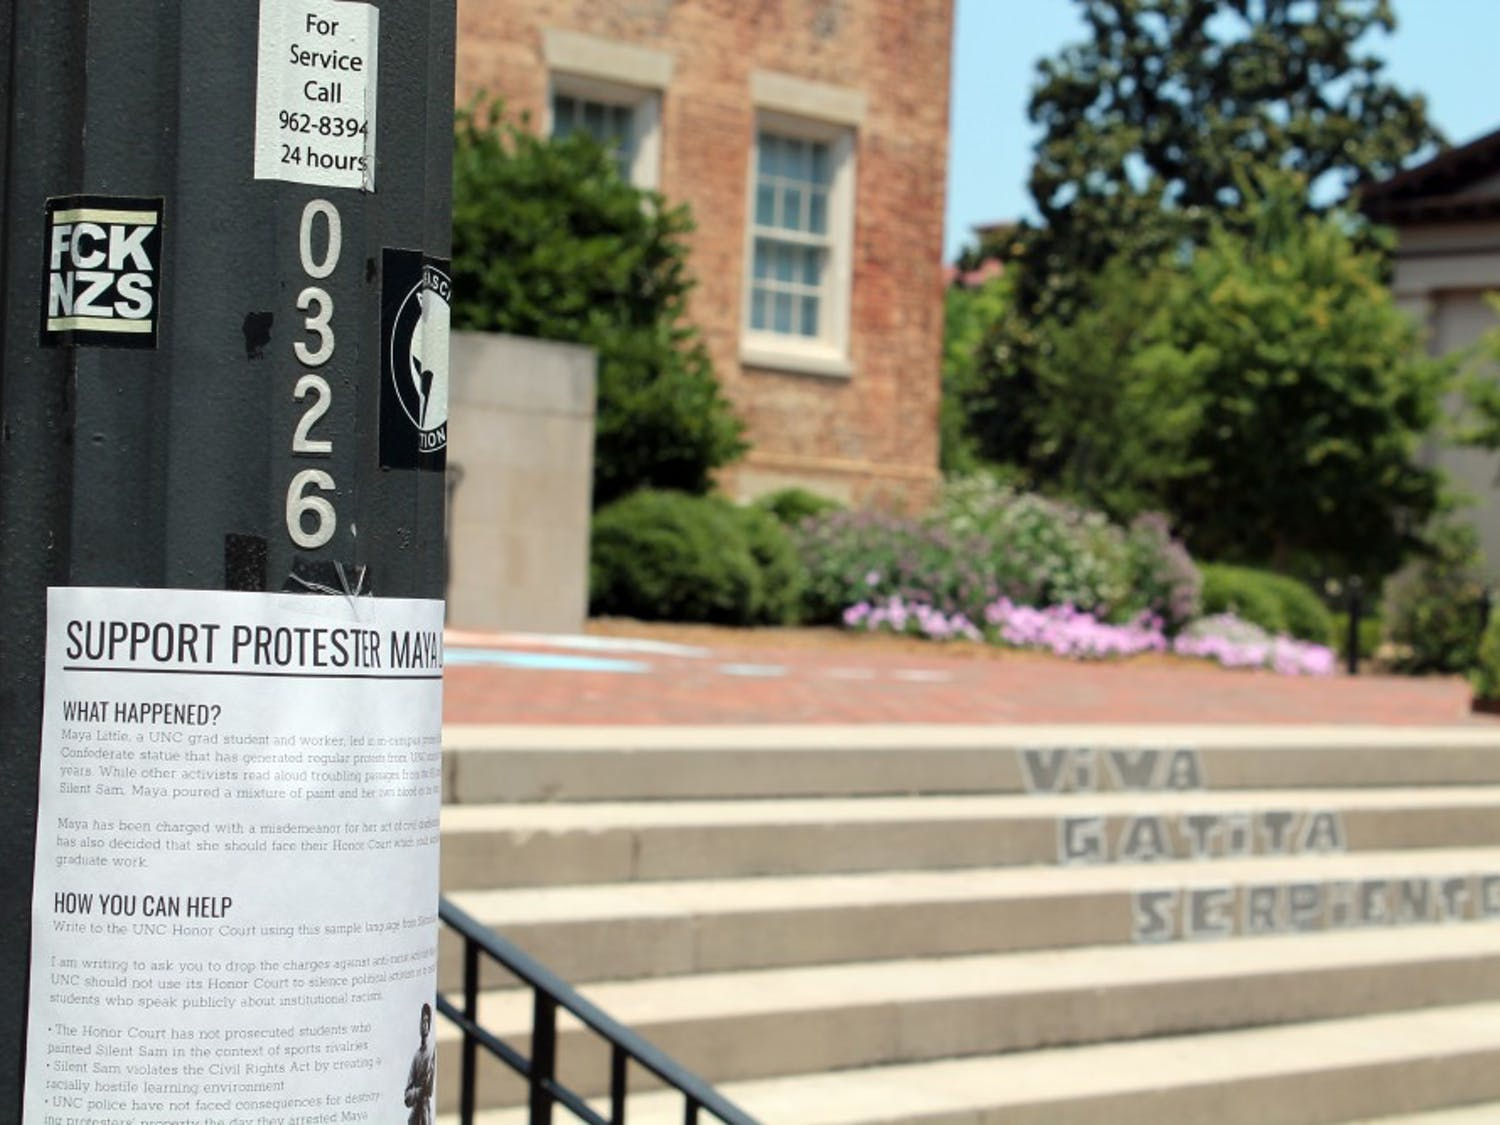 """On July 11, protestors chalked """"We Have Receipts"""" and """"McCracken Lied"""" on the bricks in front of South Building. Additionally, """"Viva Gatito Serpiente"""" was chalked onto the stairs, near flyers in support of Silent Sam protestor Maya Little."""